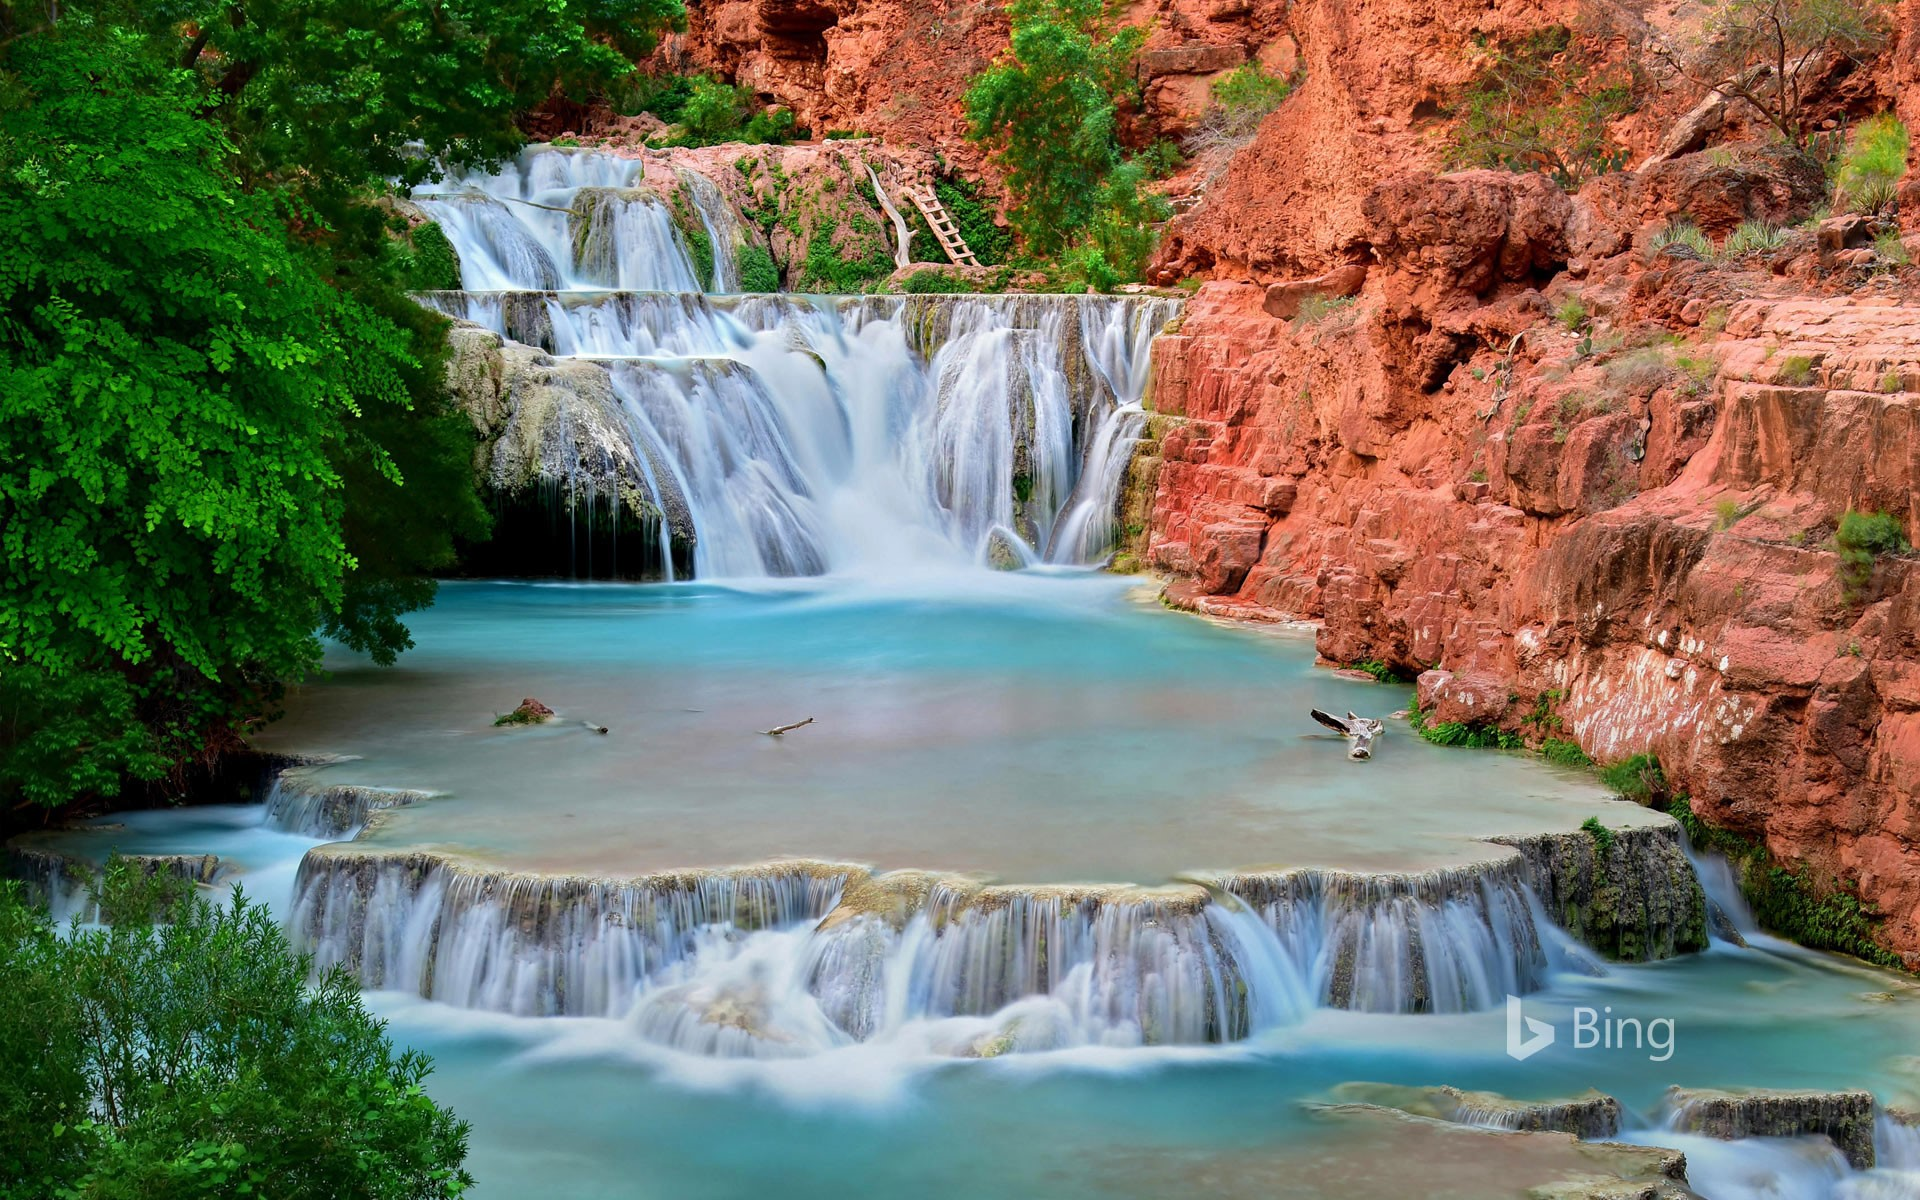 Beaver Falls on Havasu Creek in the Grand Canyon, Arizona, USA